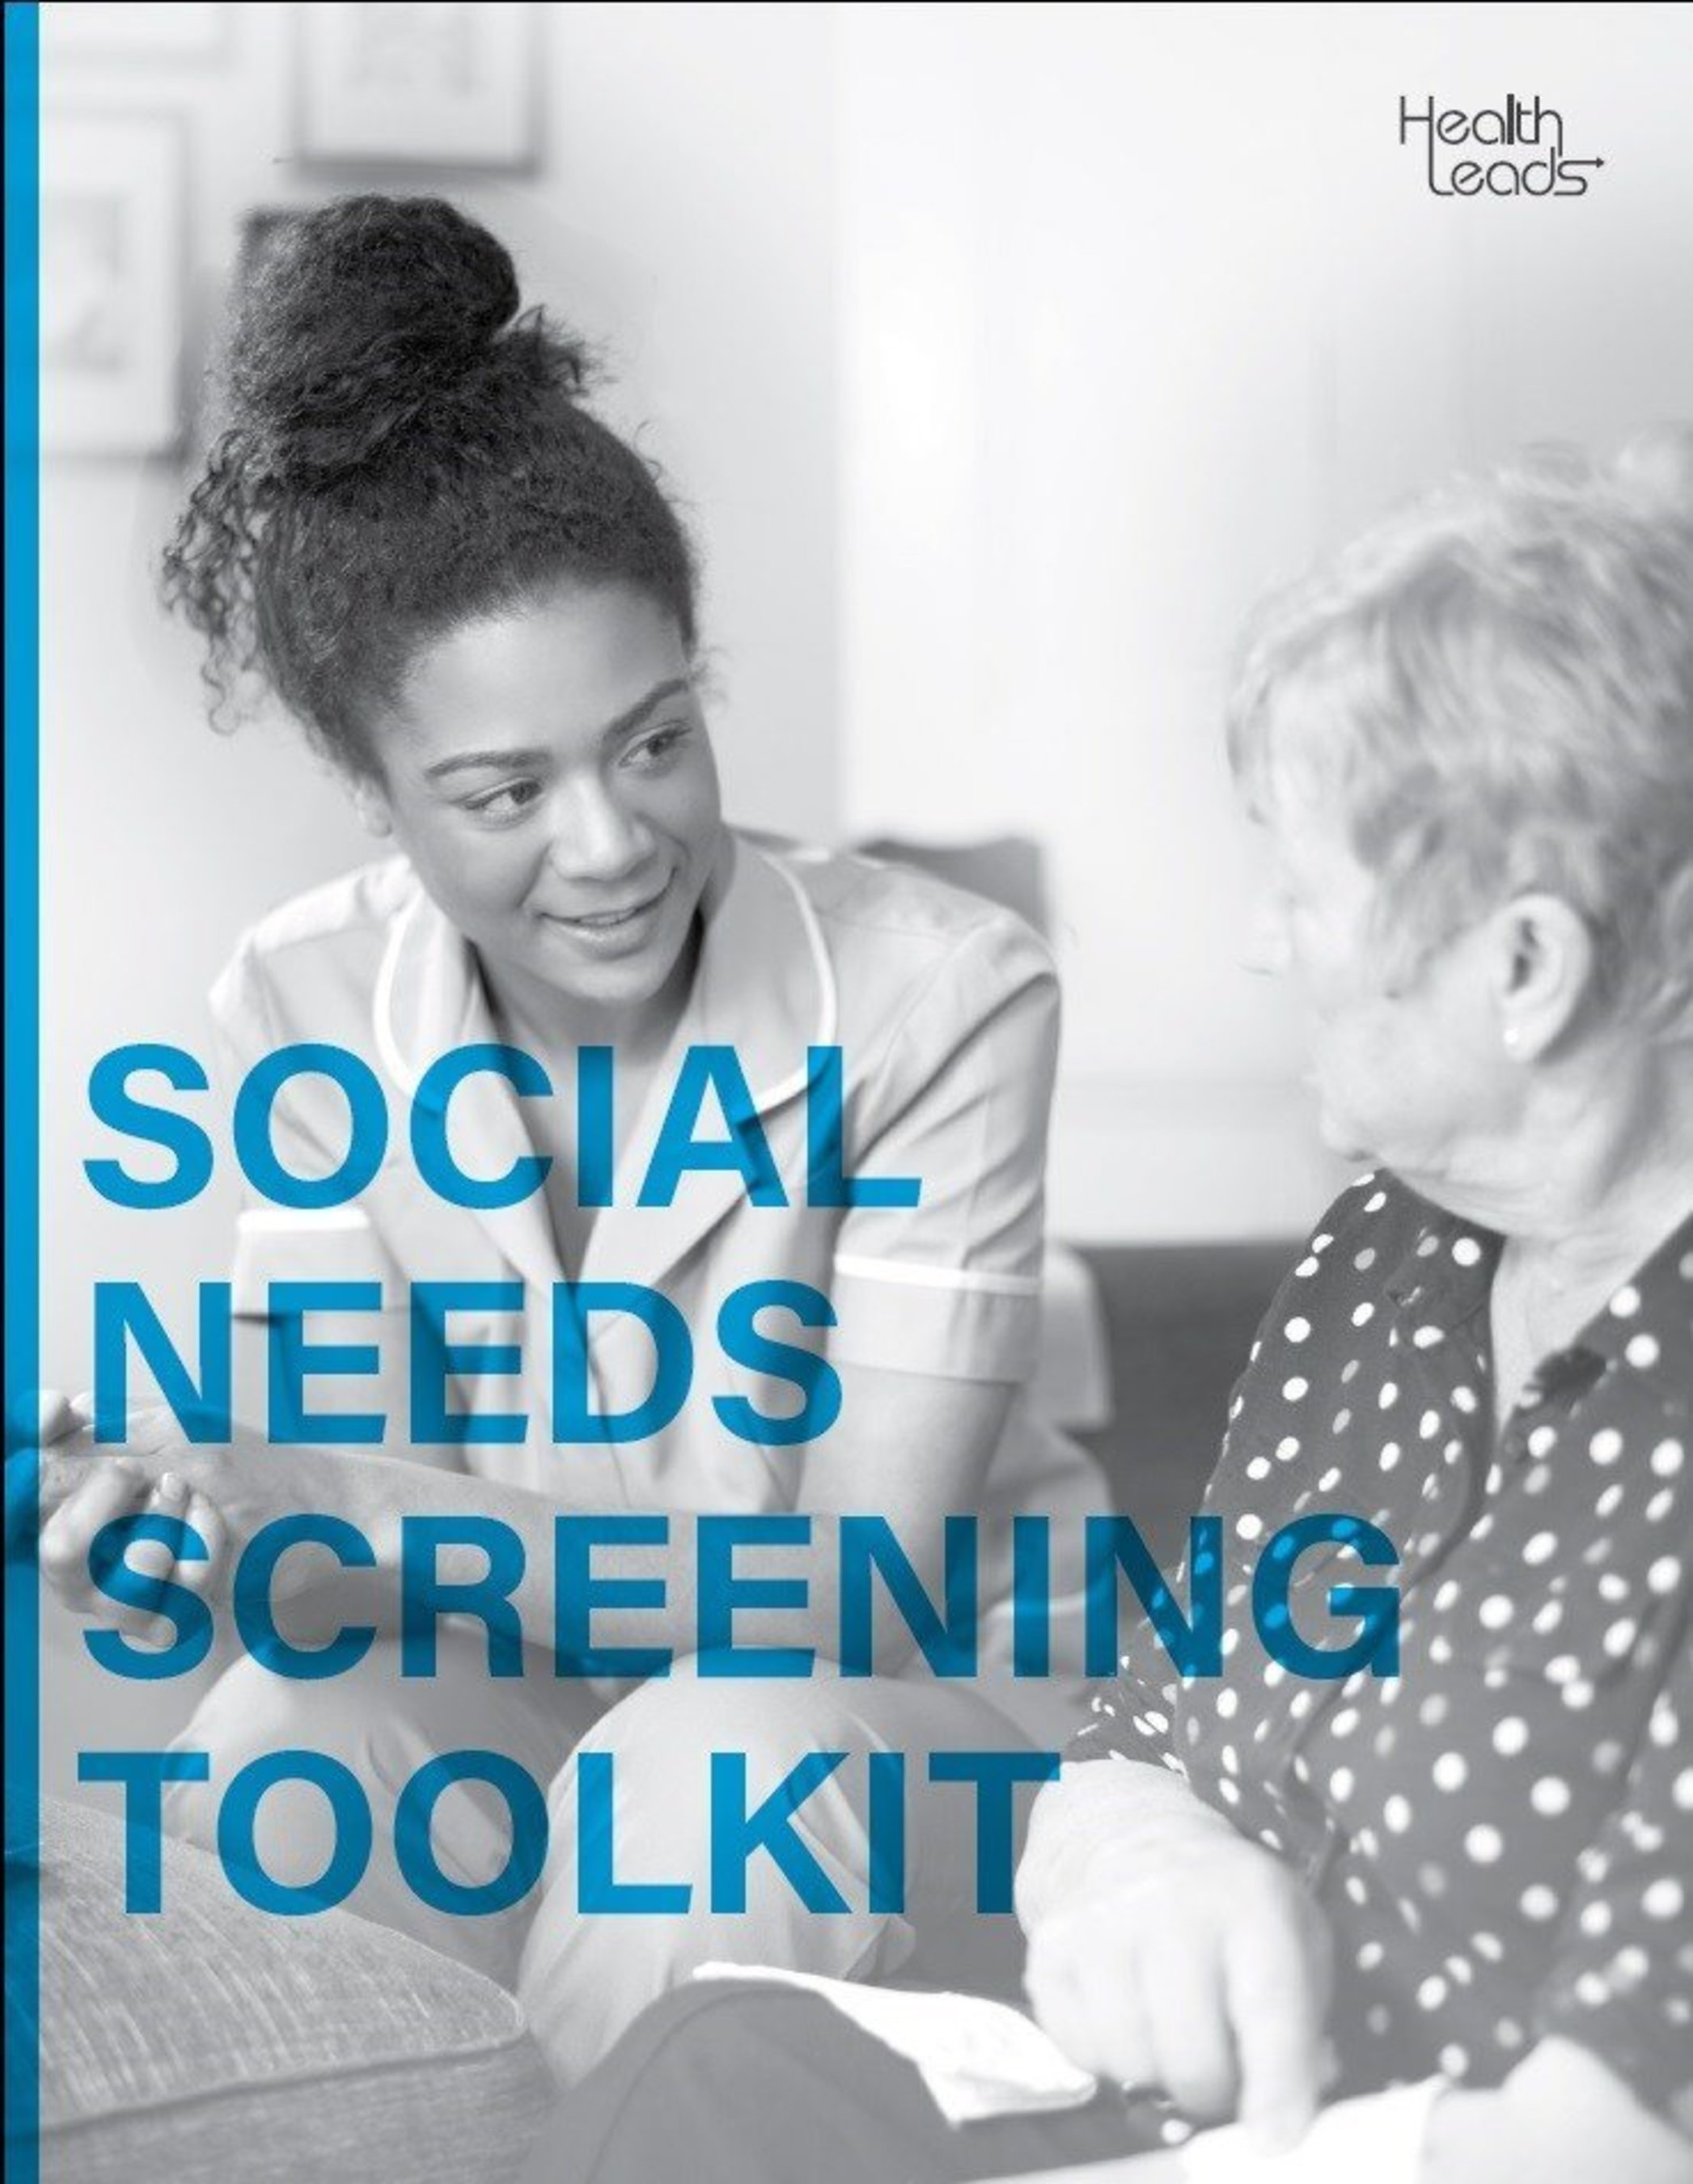 Health Leads Screening Toolkit